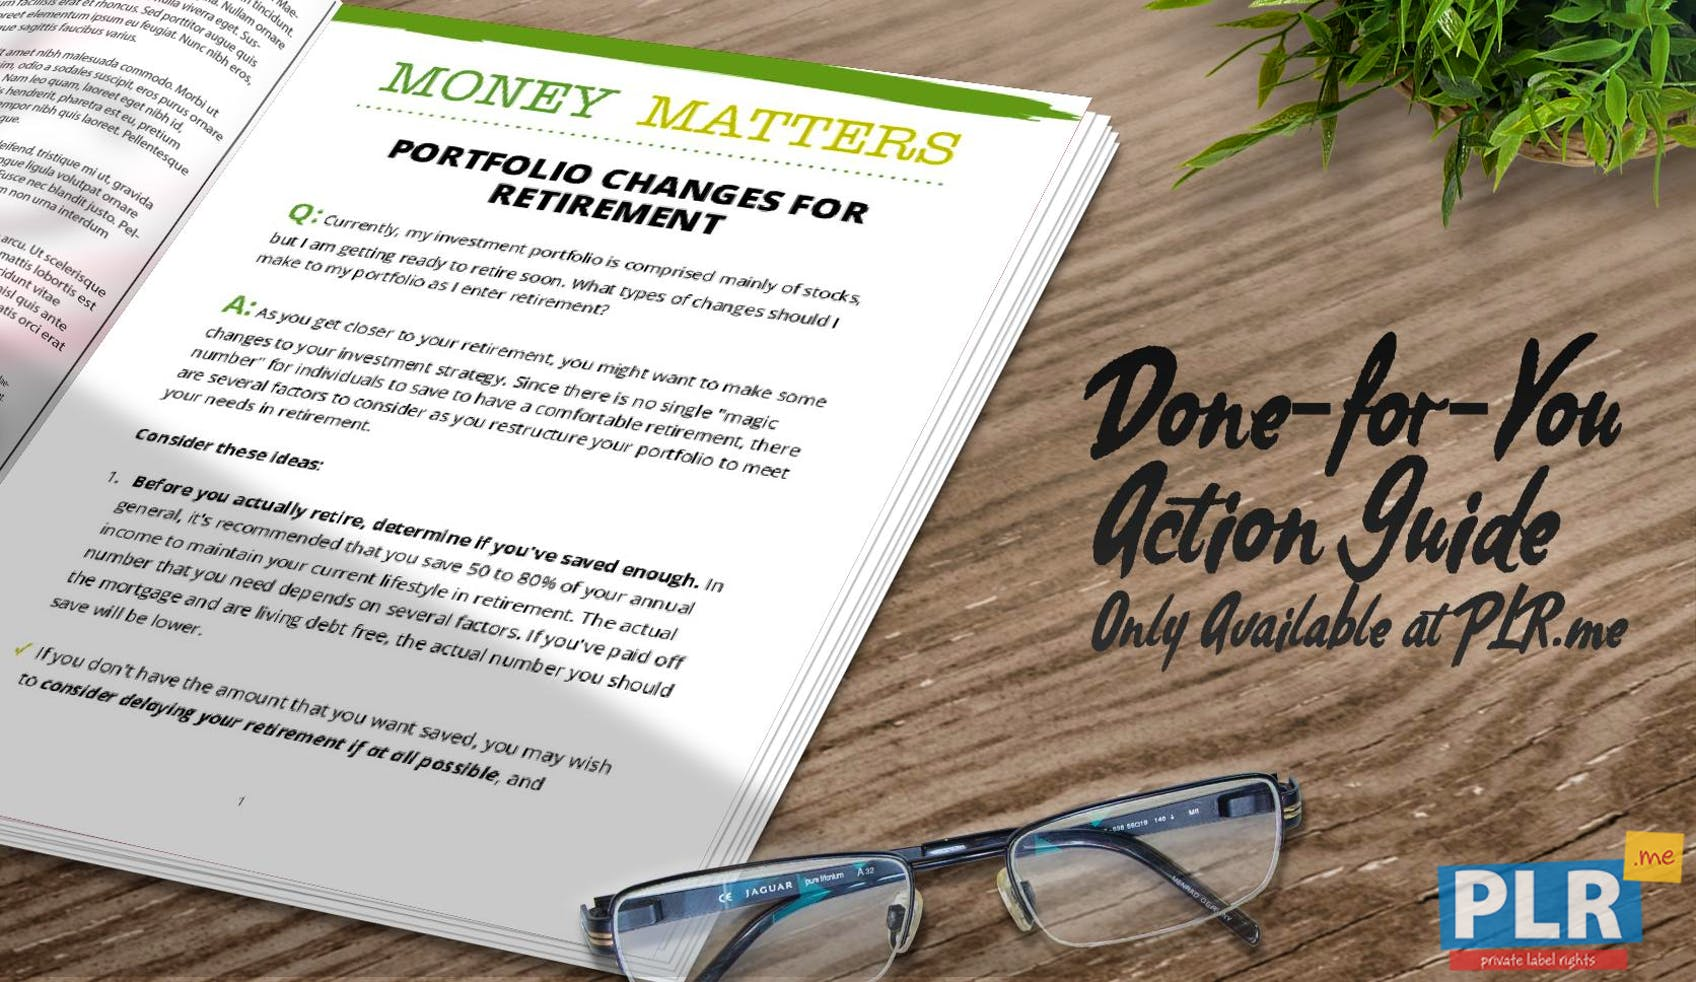 Money Matters Portfolio Changes For Retirement